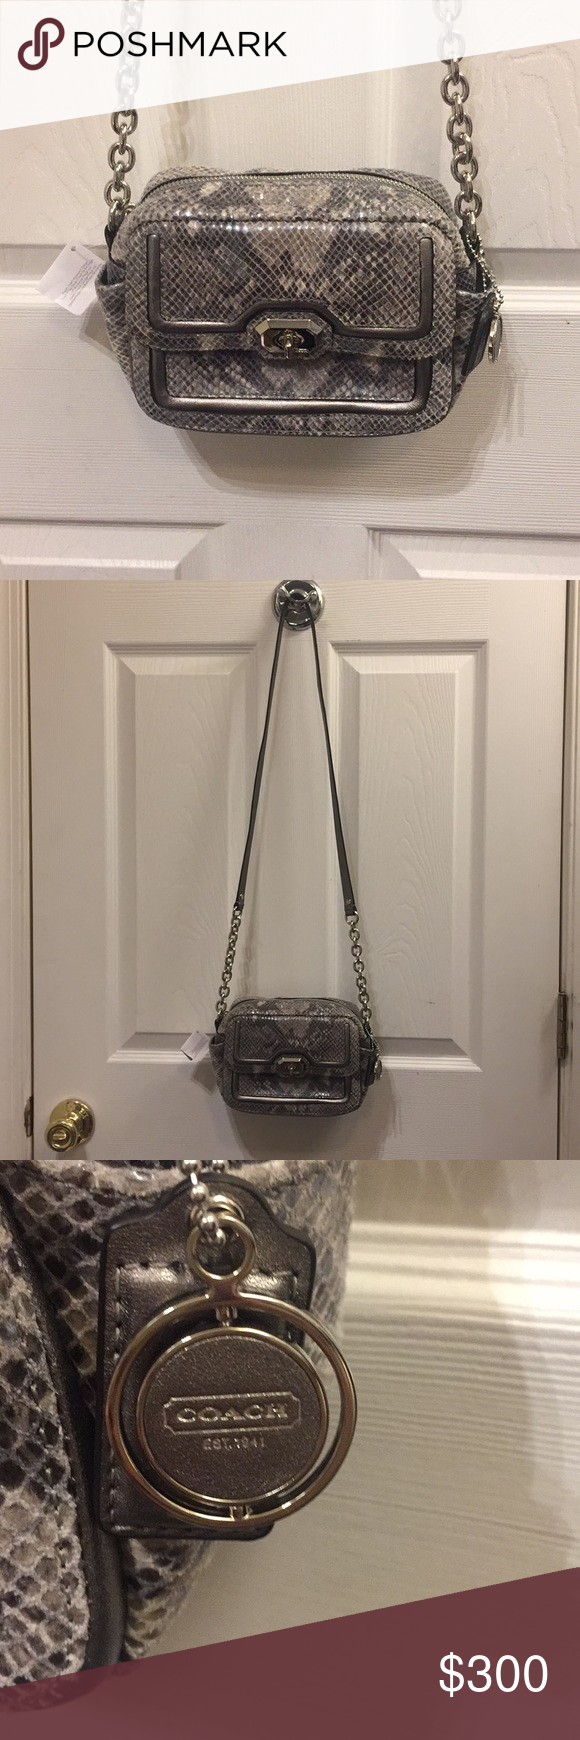 NWT Coach CMB EX LTH CAMERA purse NWT Coach SV/GY purse. This is so cute! Coach Bags Crossbody Bags #camerapurse